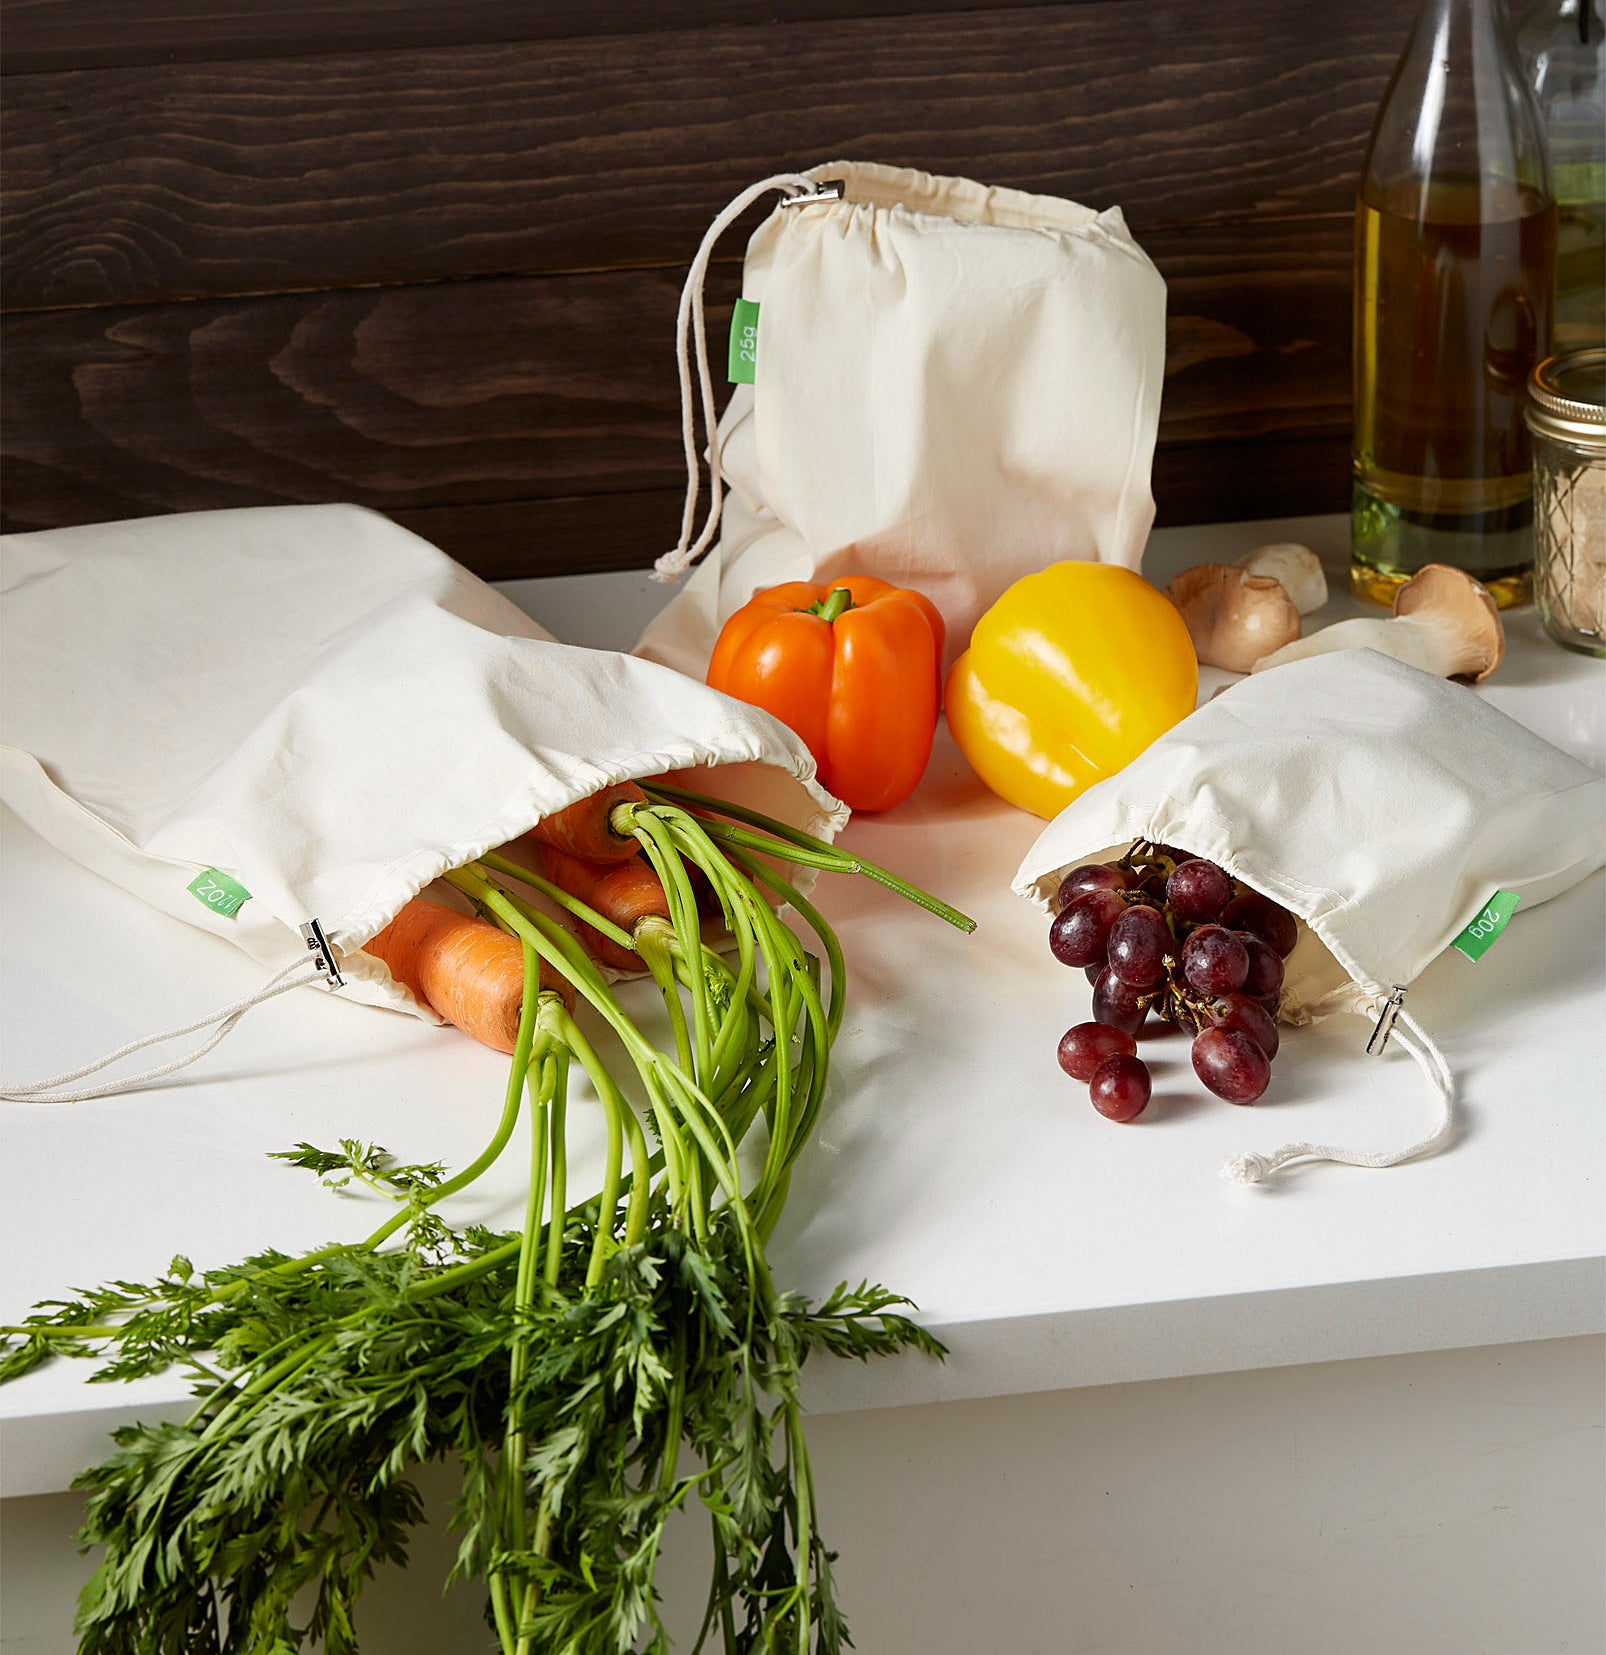 The three produce bags filled with fruits and vegetables